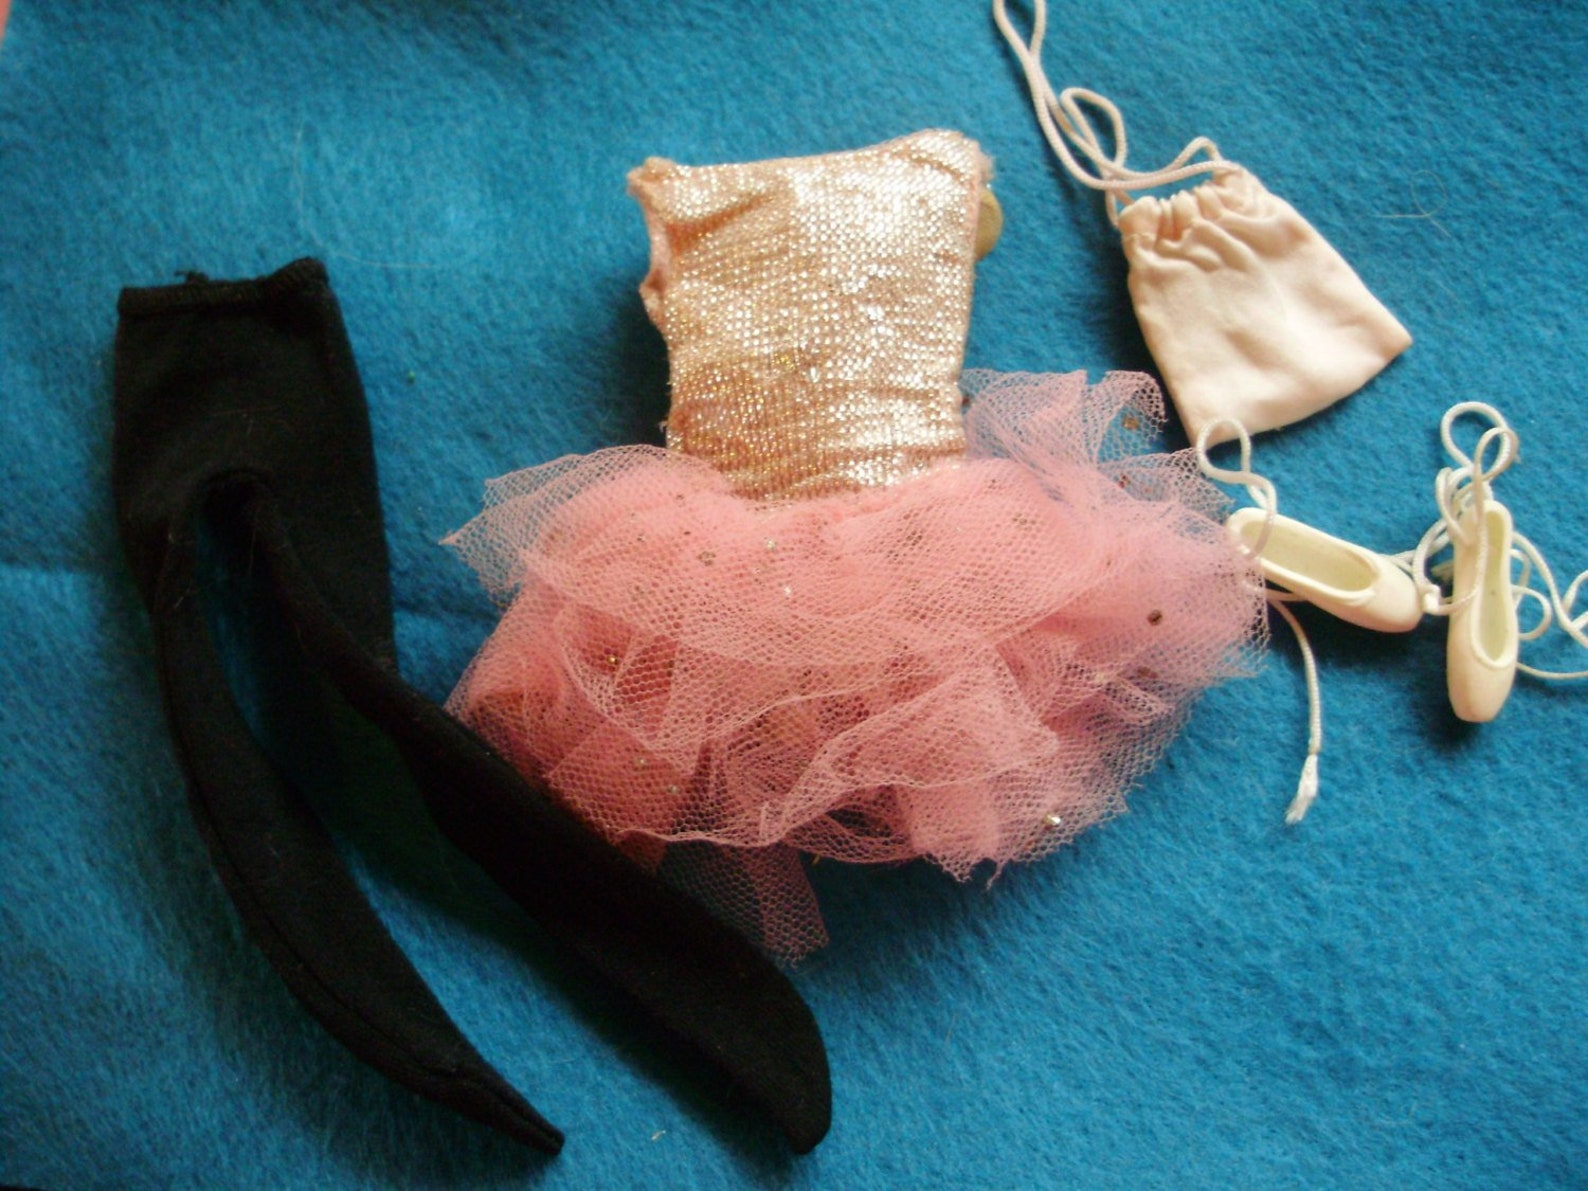 1964 skipper *ballet class* #1905 -metallic tutu w/ pink tulle, black tights, satin shoe bag & ballerina slippers -vintage barbi